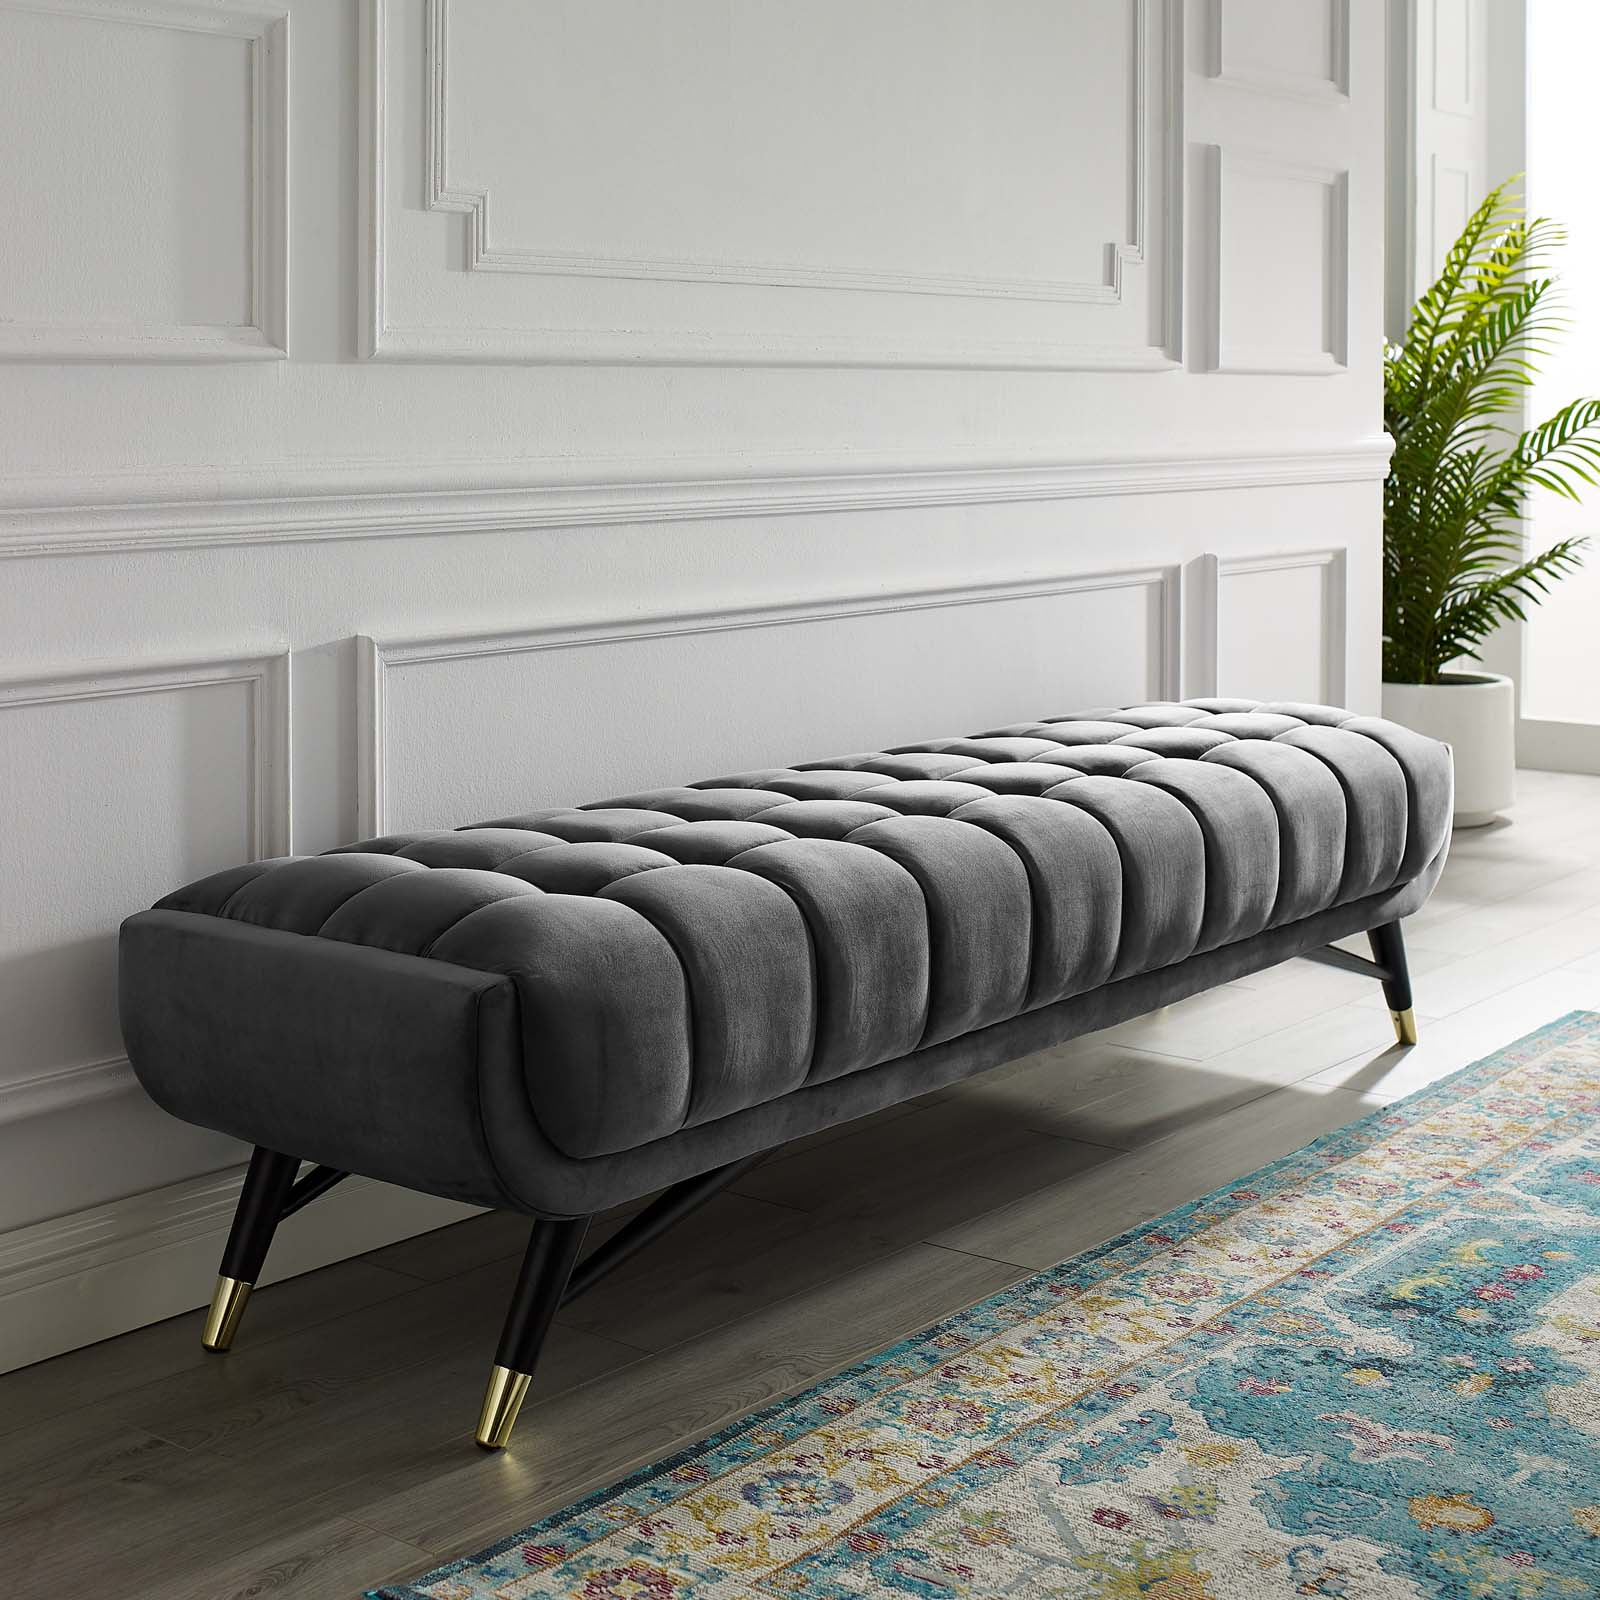 Modway Adept Velvet Upholstered Bench, Multiple Colors